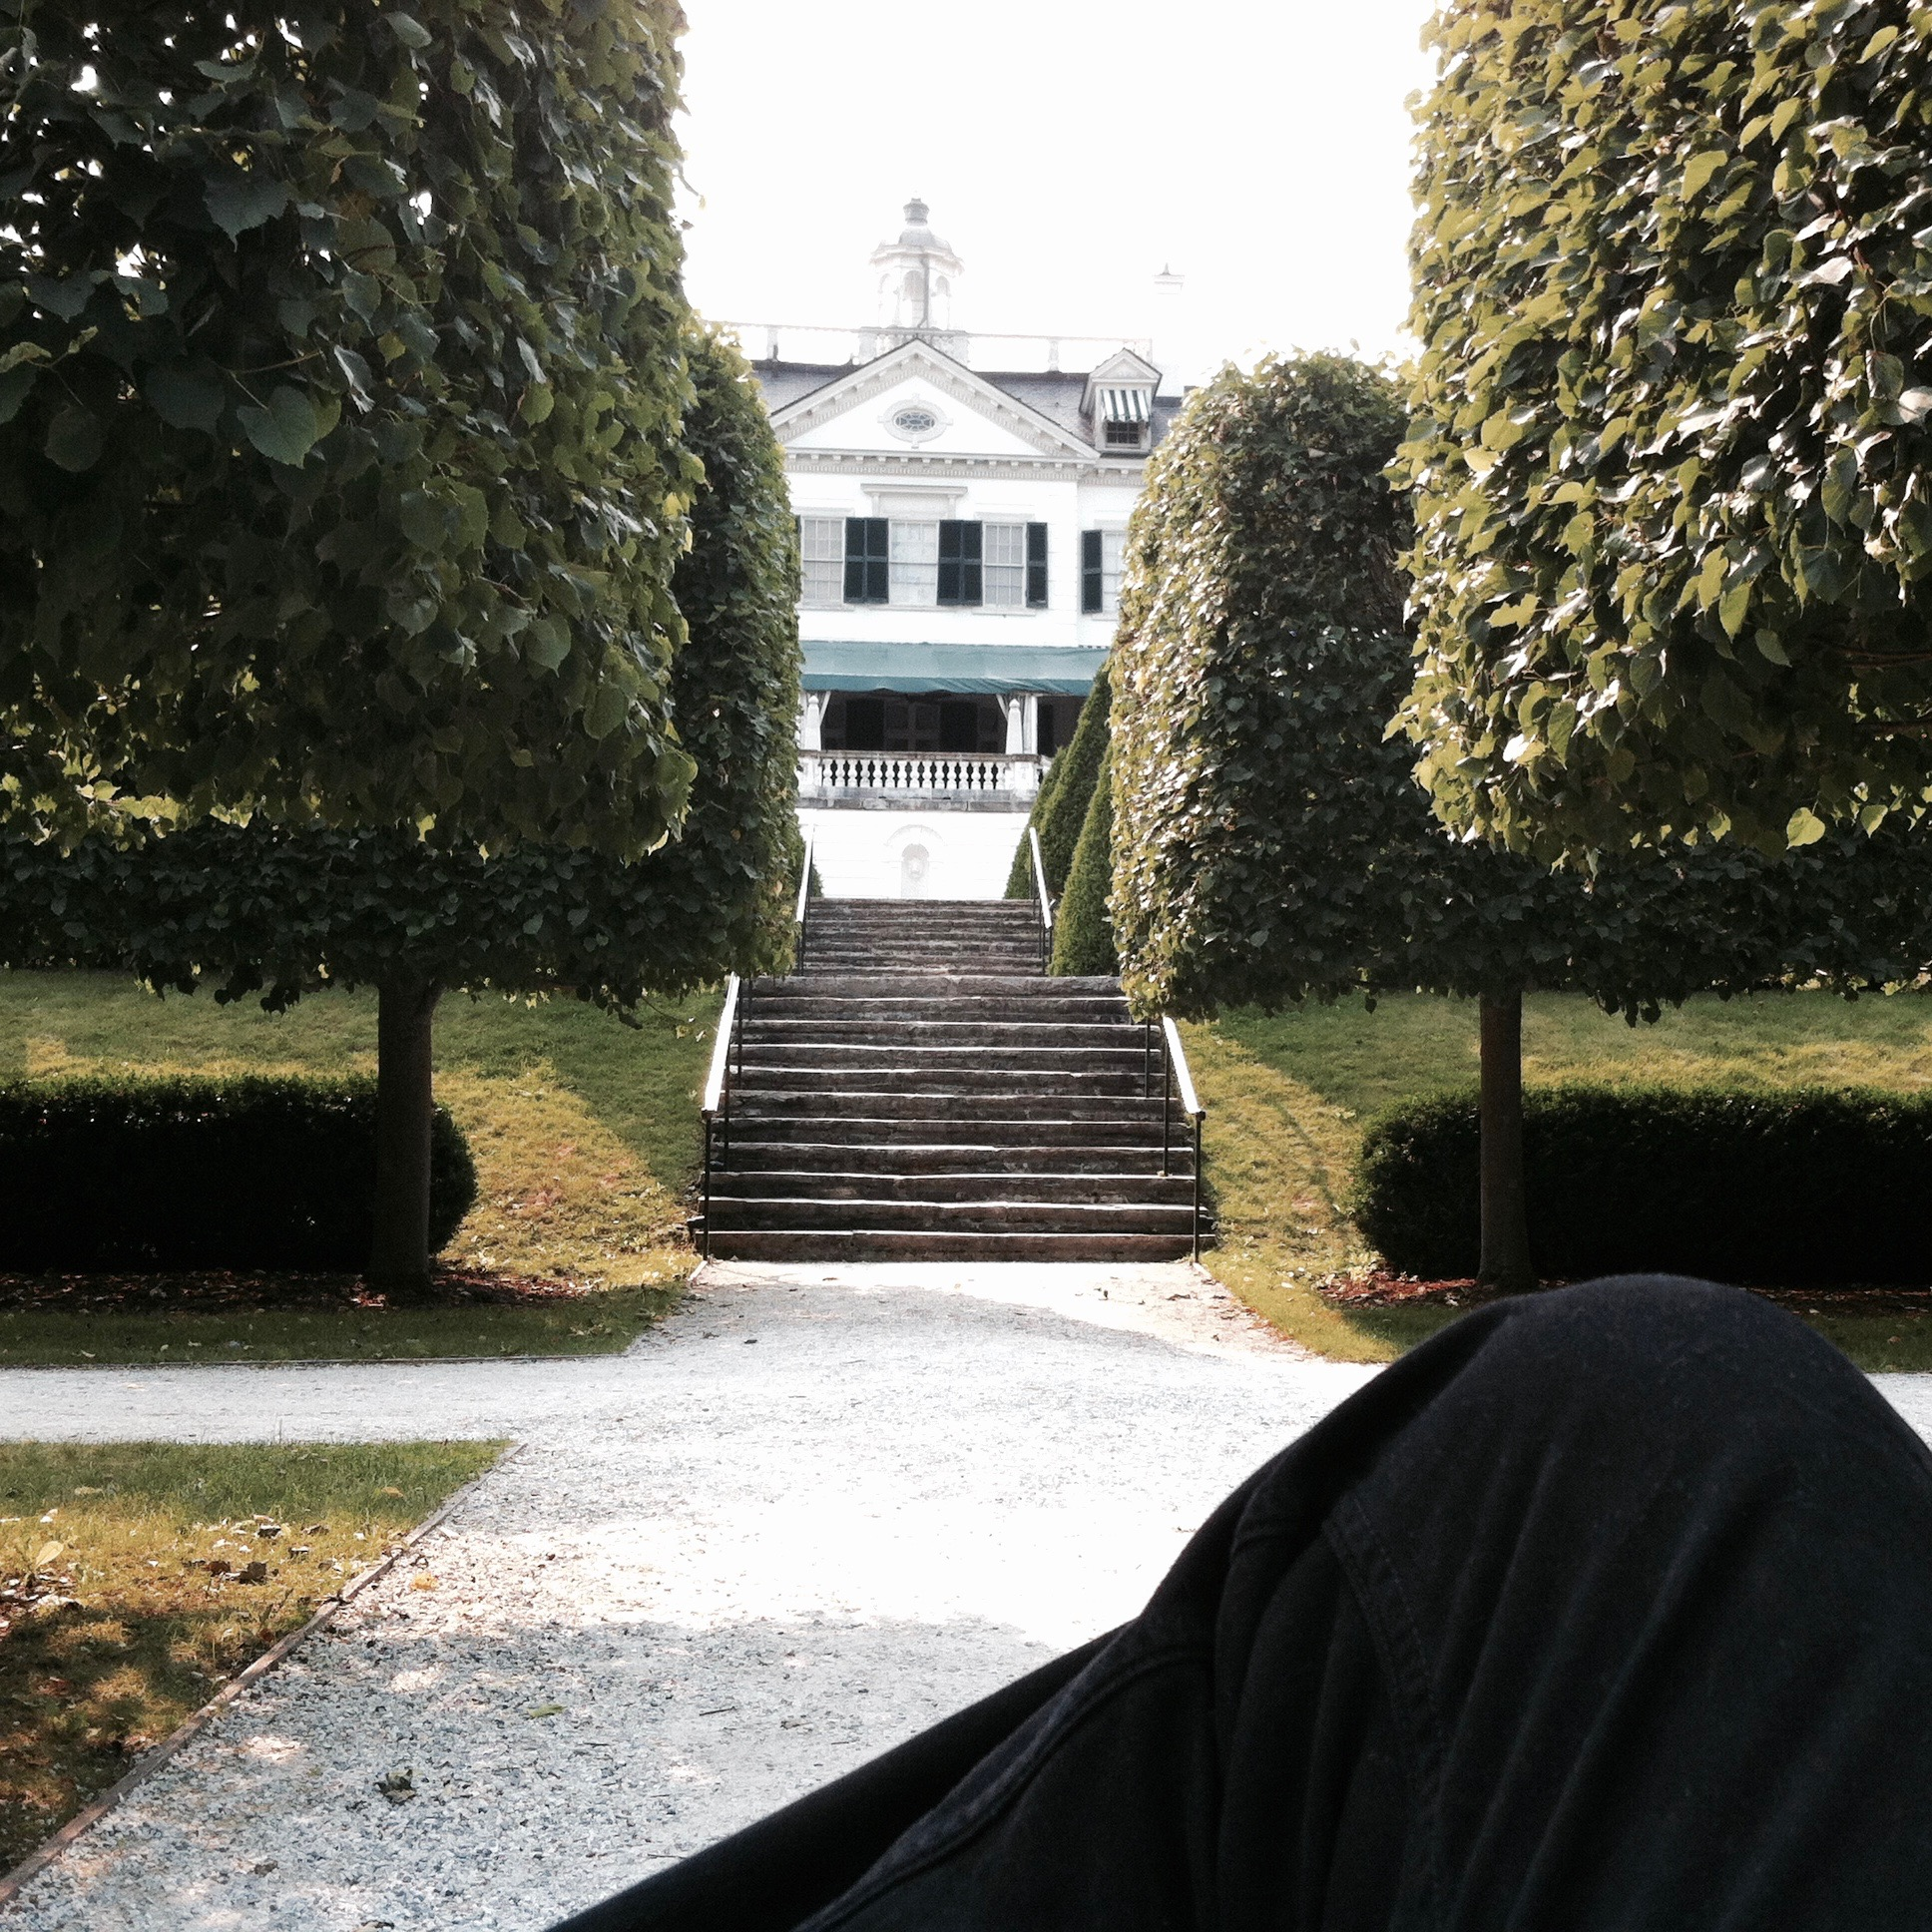 Sitting on a bench in the center of the gardens. — N.M-Y. '15